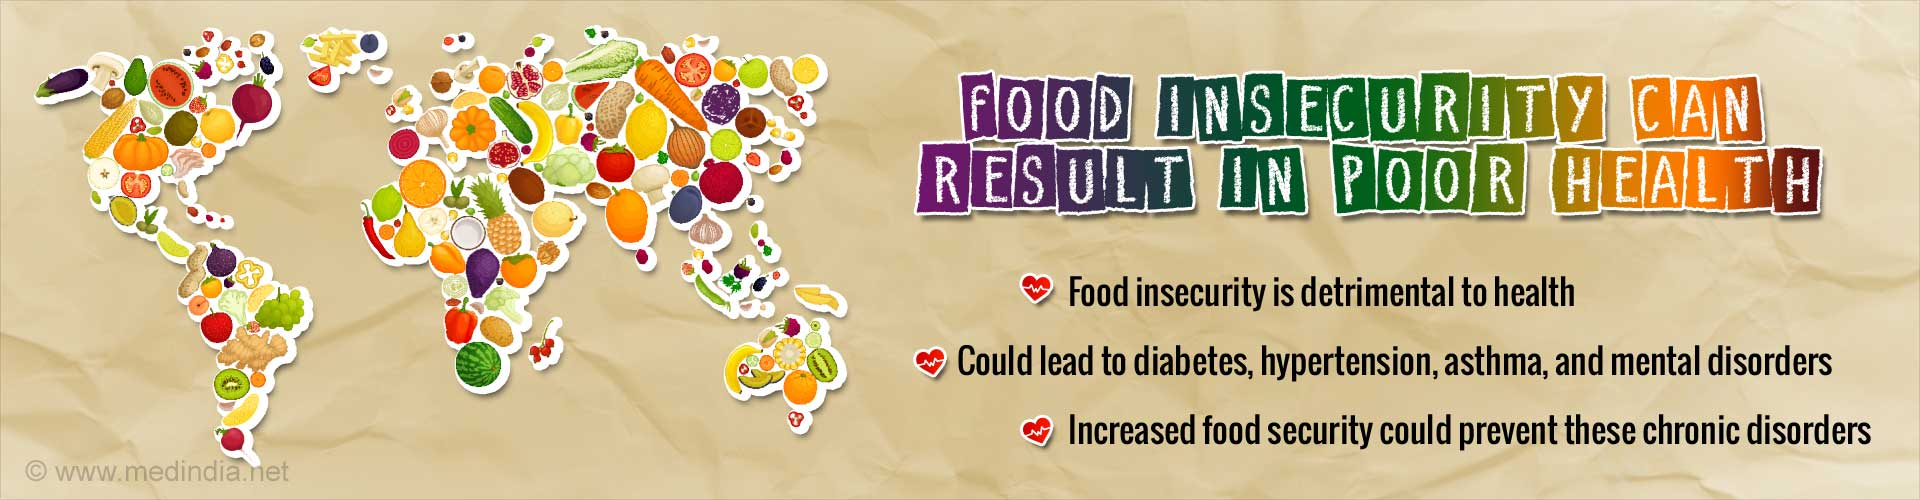 Food Insecurity Linked to Higher Risk of Asthma, Diabetes and Hypertension